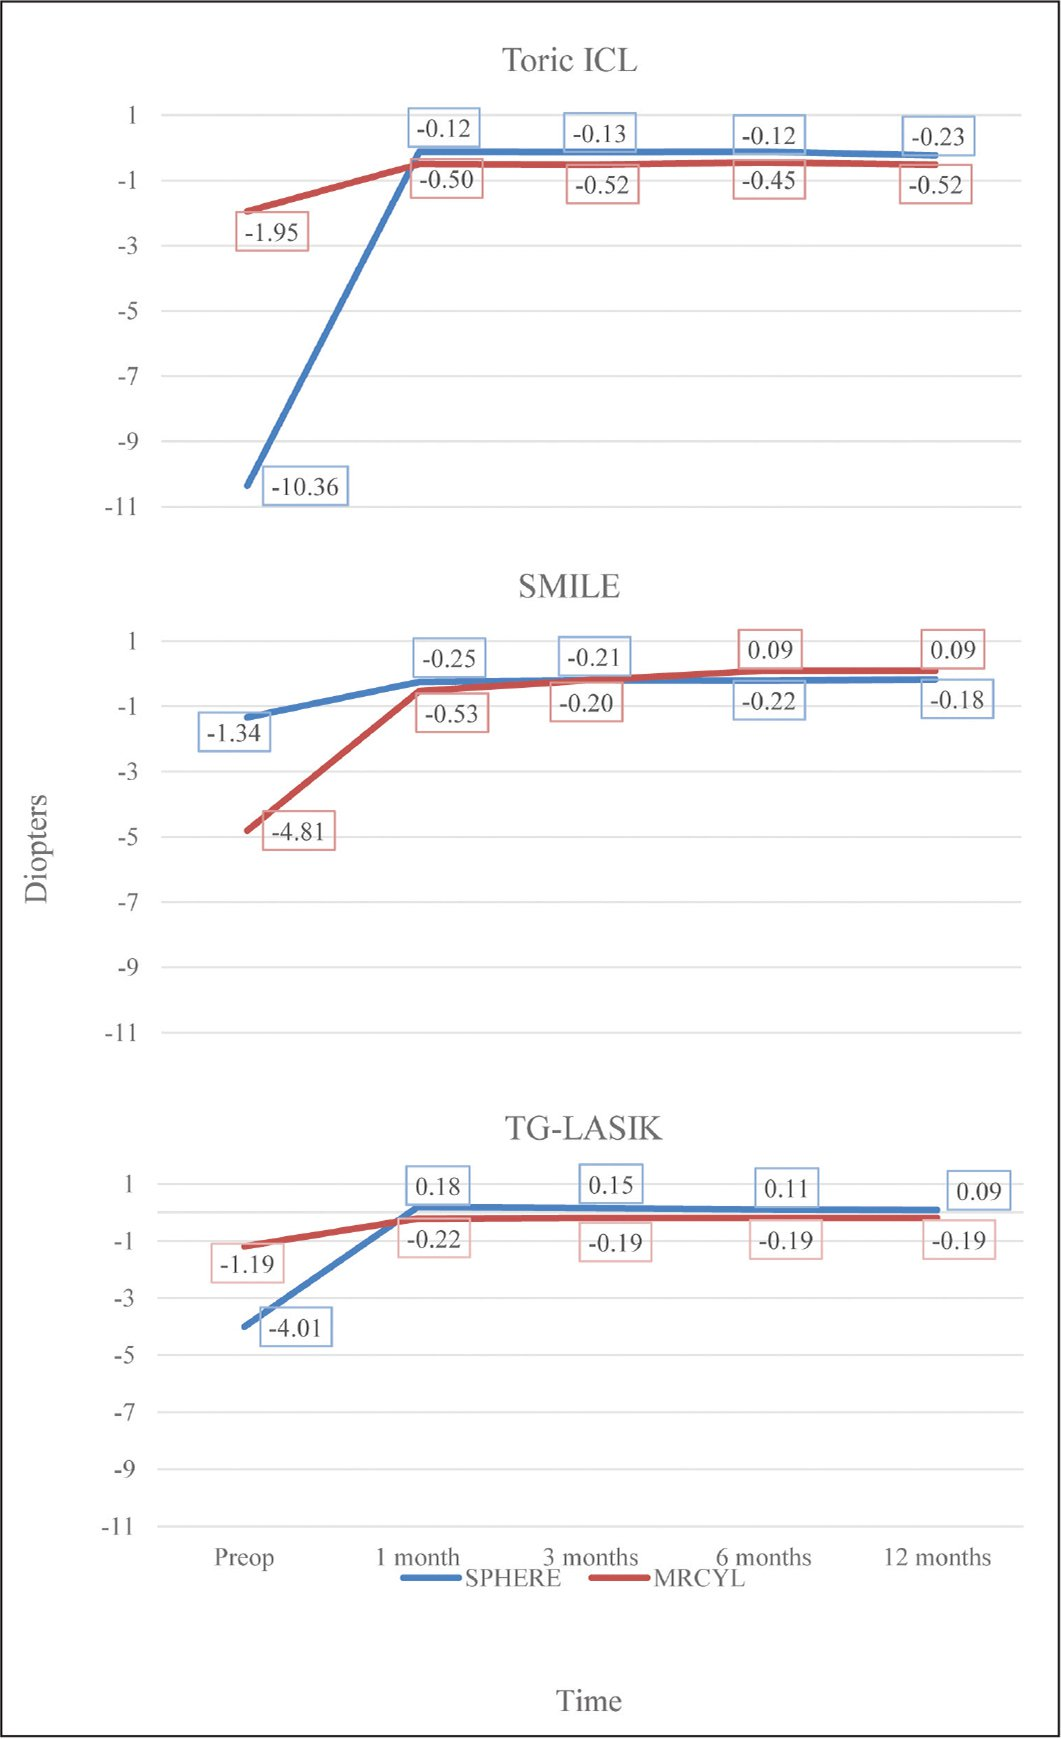 Sphere and mean refractive cylinder (MRCYL) over time for Visian Toric Implantable Collamer Lens (STAAR Surgical, Monrovia, CA) (Toric ICL), small incision lenticule extraction (SMILE), and topography-guided laser in situ keratomileusis (TG-LASIK). The original U.S. Food and Drug Administration cylinder values for Toric ICL are reported as negative values for easier graphical comparison.